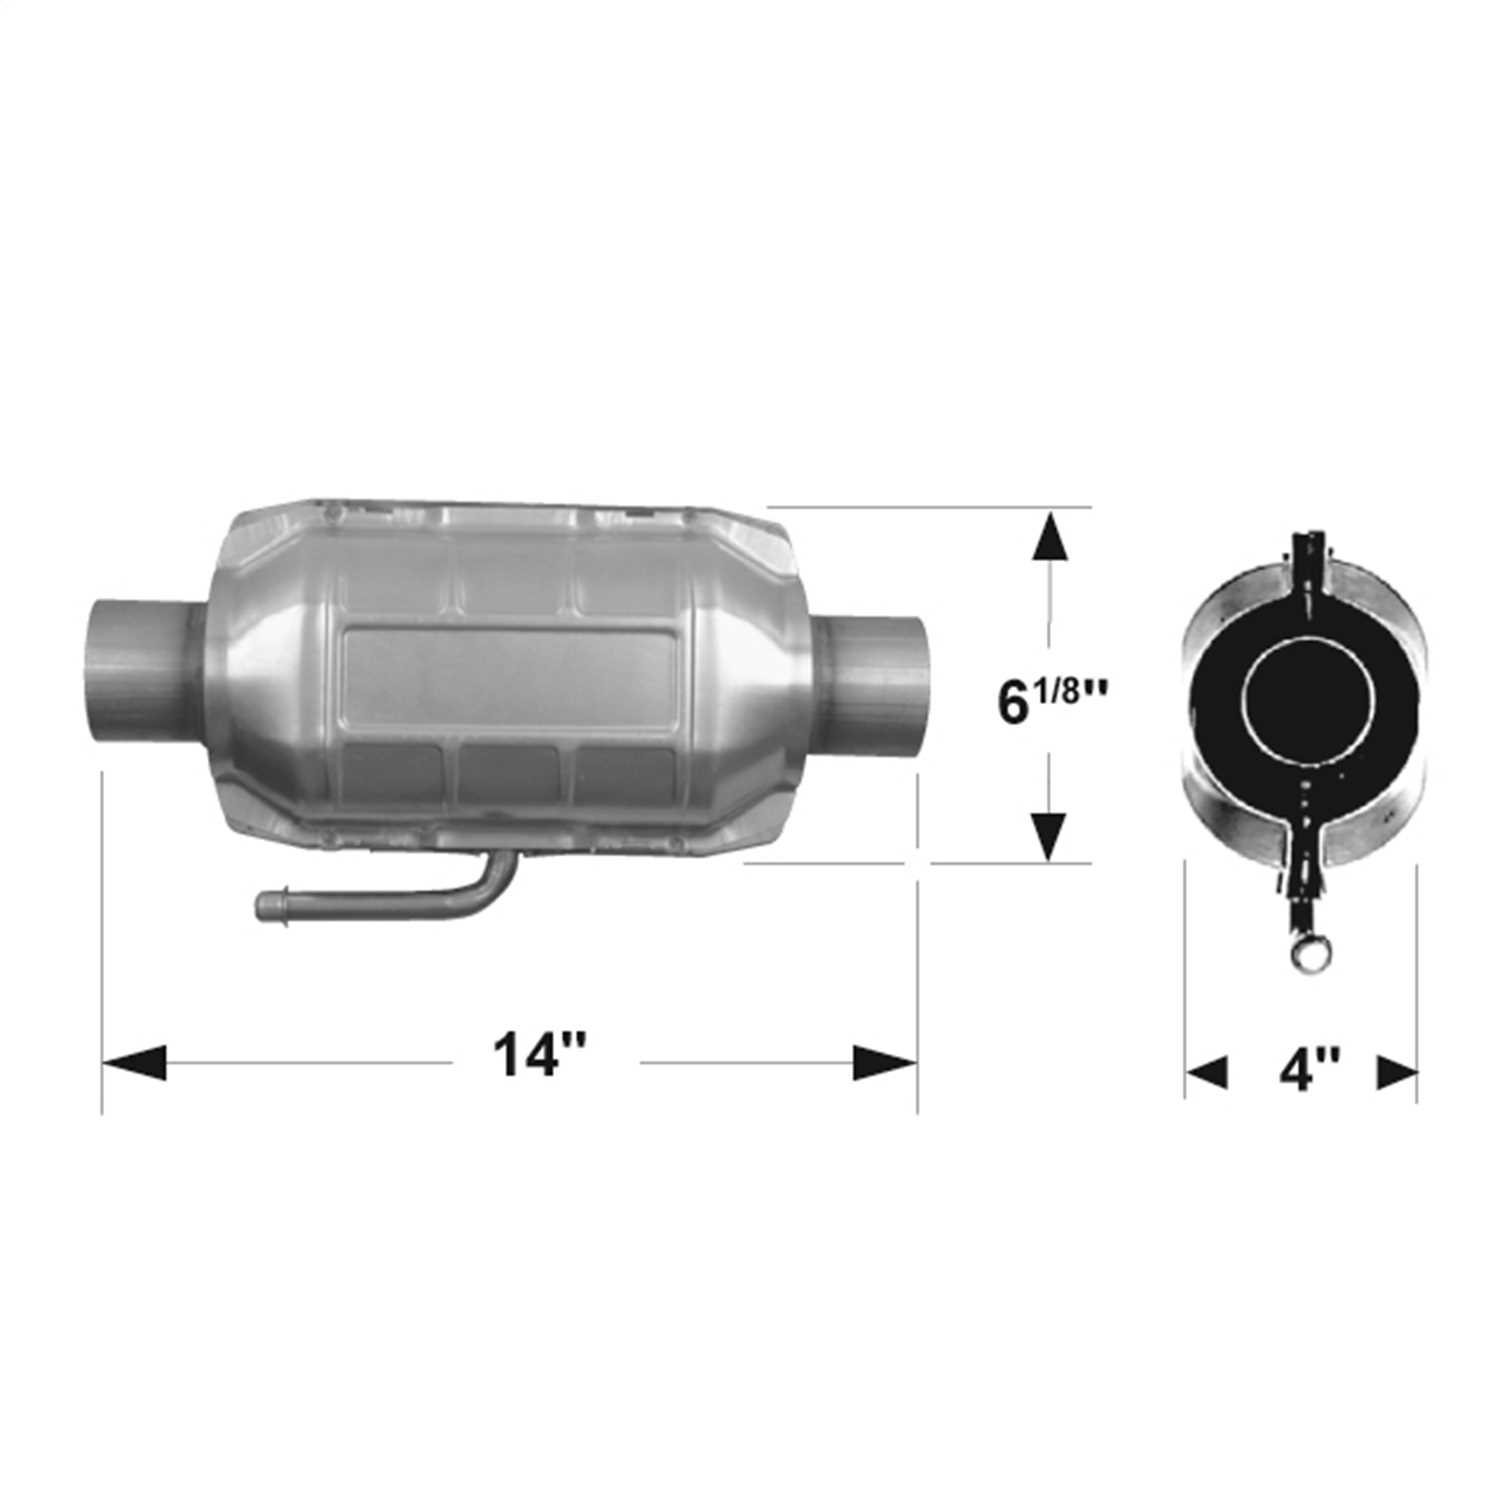 2200120 Flowmaster 49 State Catalytic Converters Universal Catalytic Converter